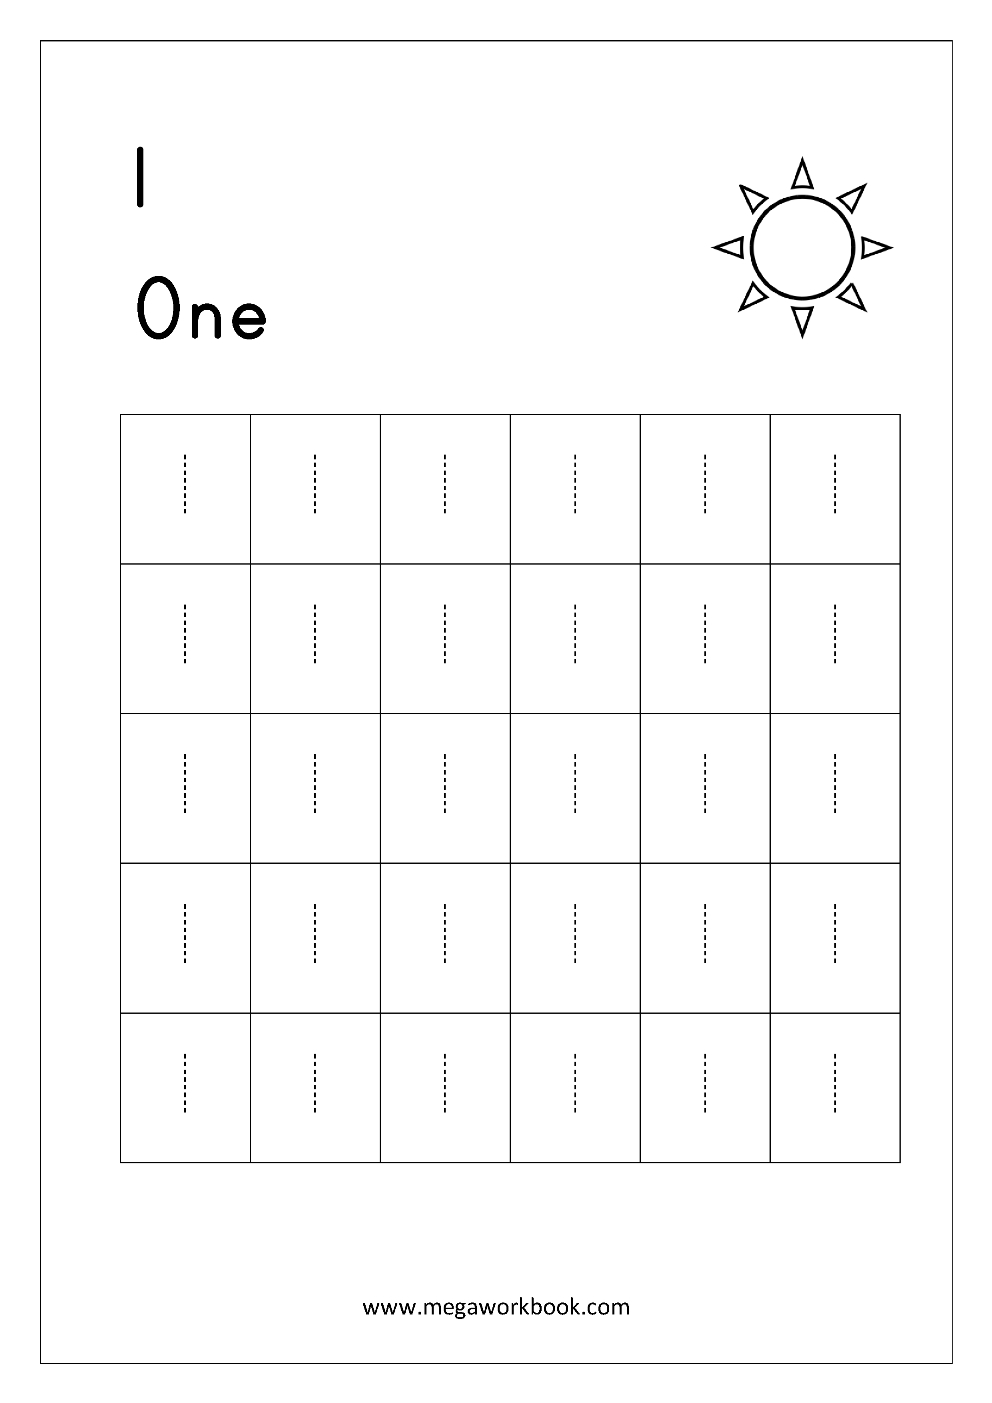 Free Printable Number Tracing And Writing (1-10) Worksheets - Number | Number One Worksheet Preschool Printable Activities